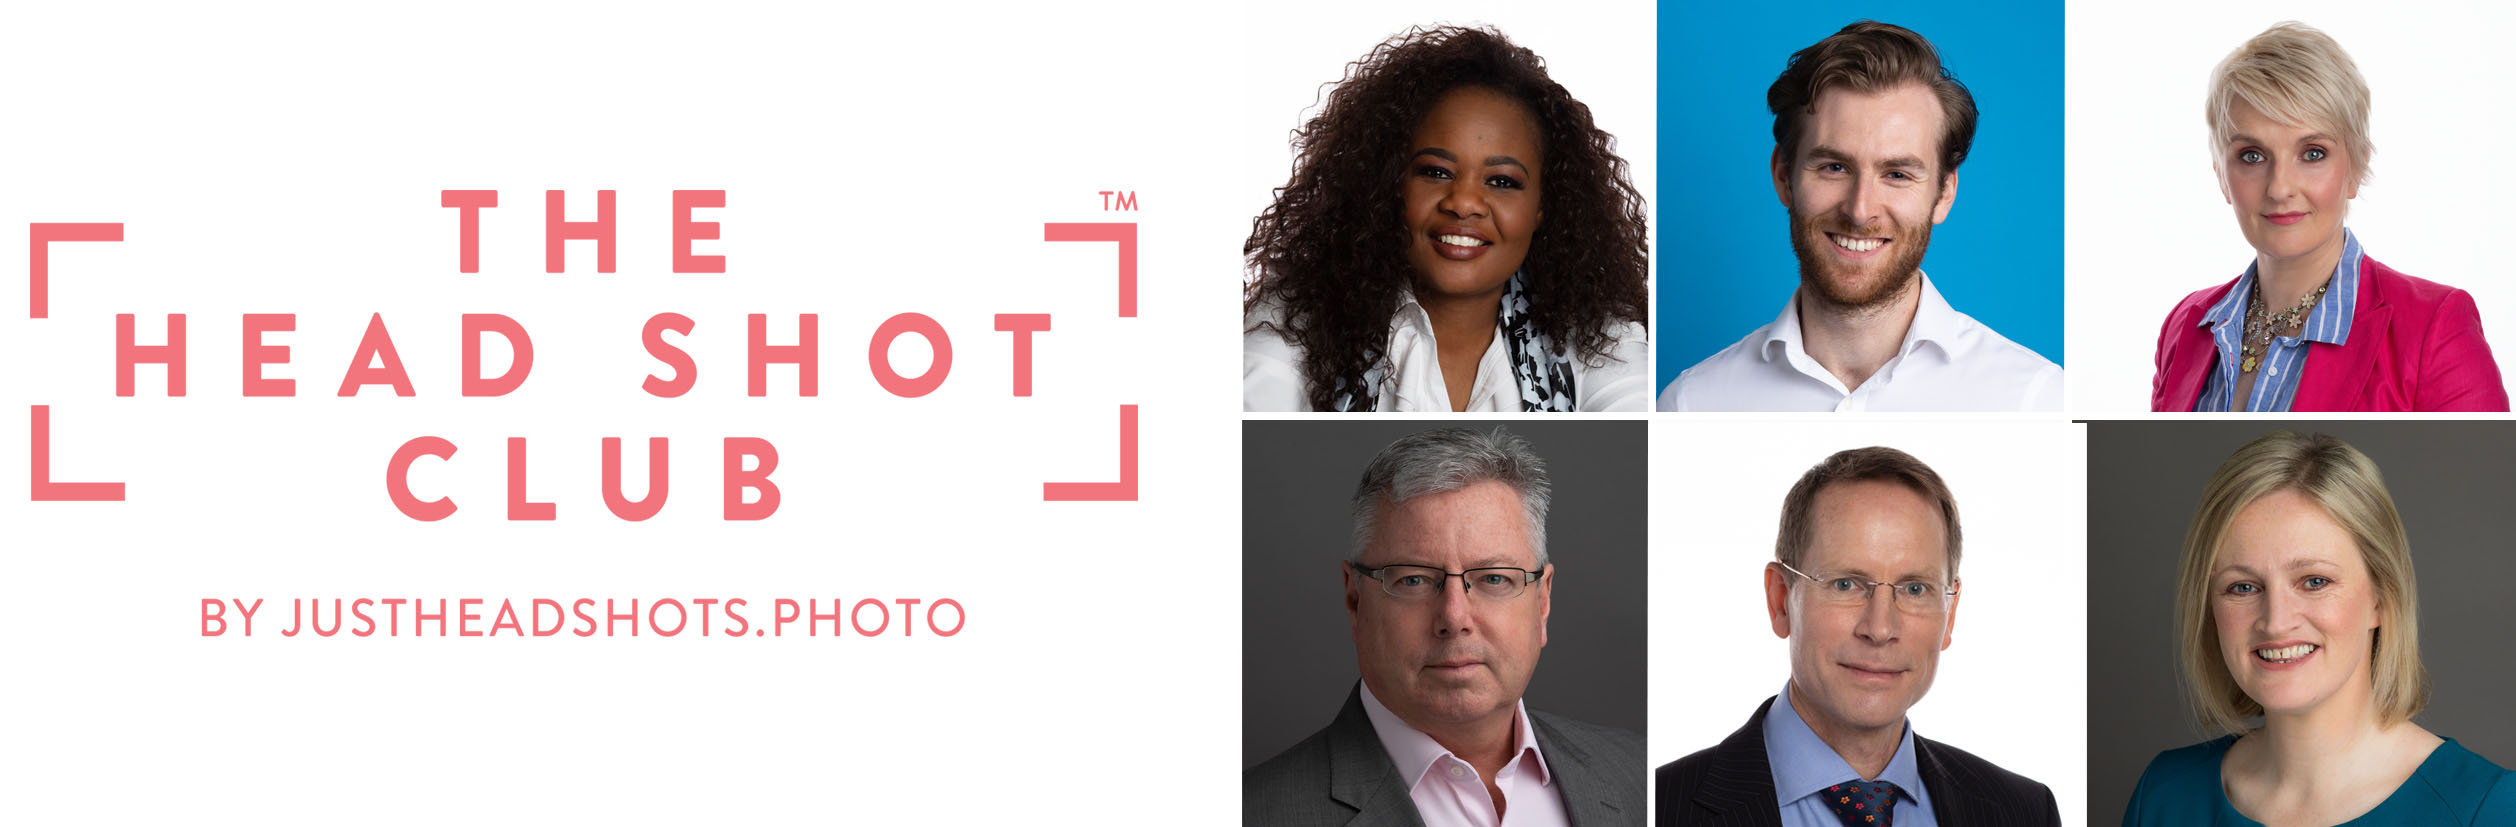 Affordable headshot photography